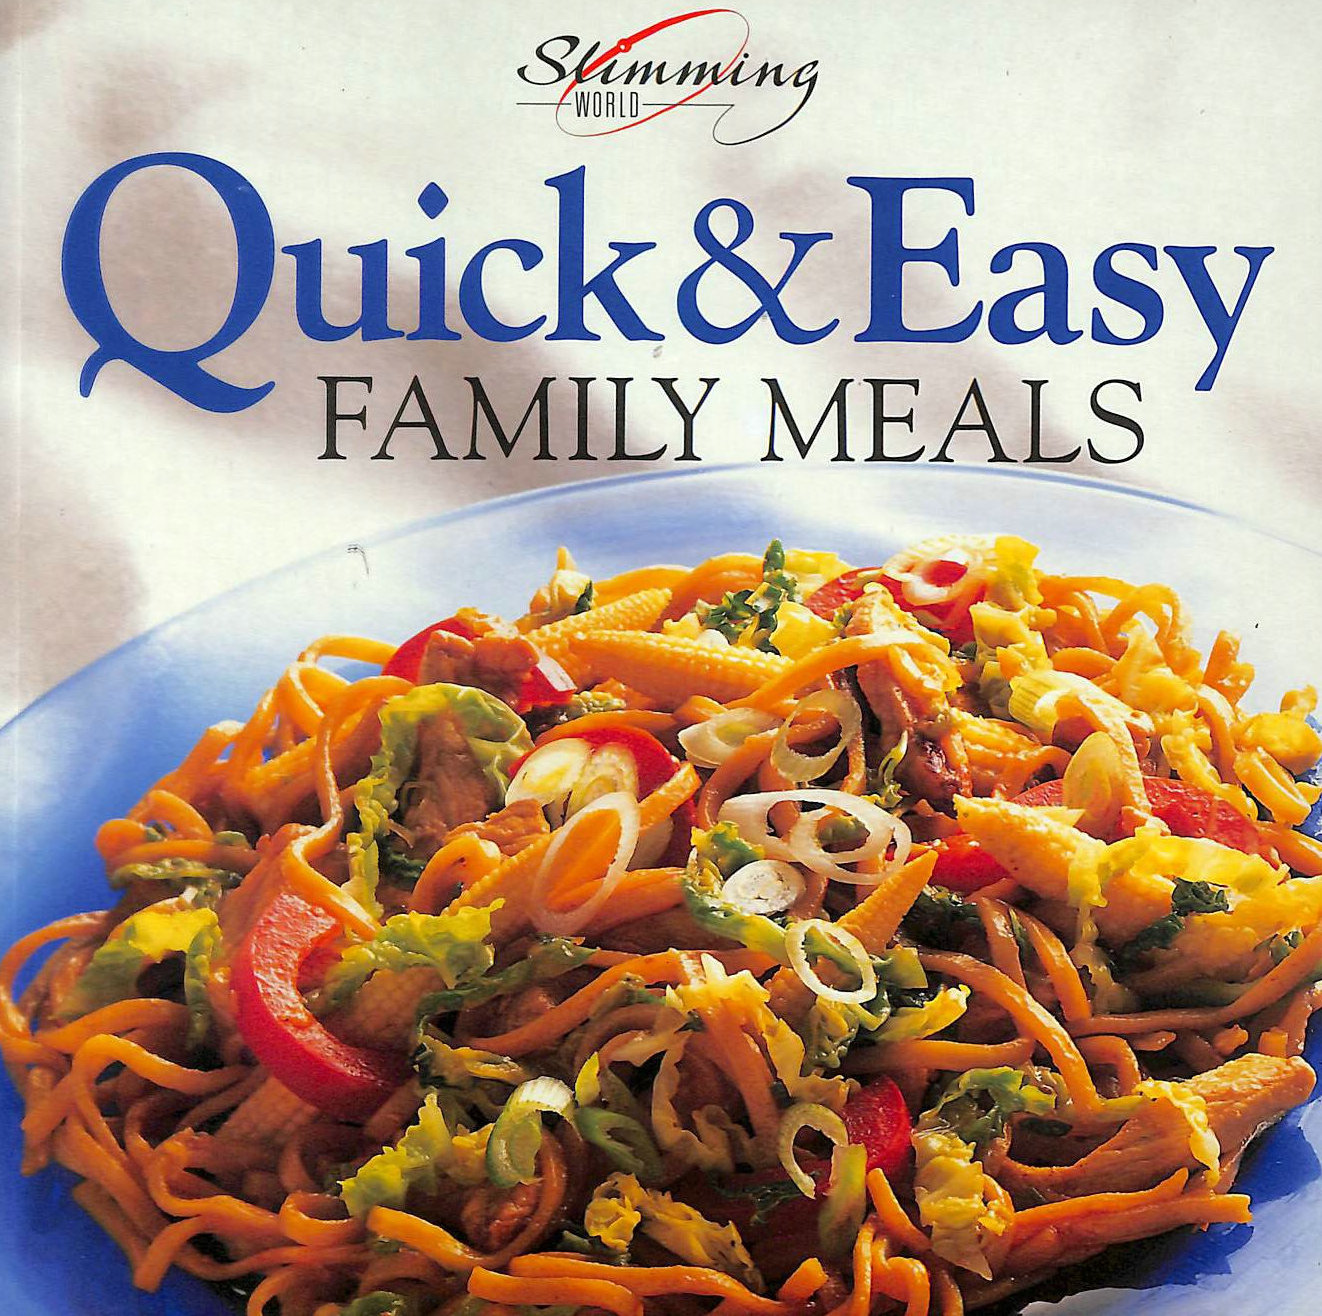 Image for Quick & Easy Family Meals [Slimming World]